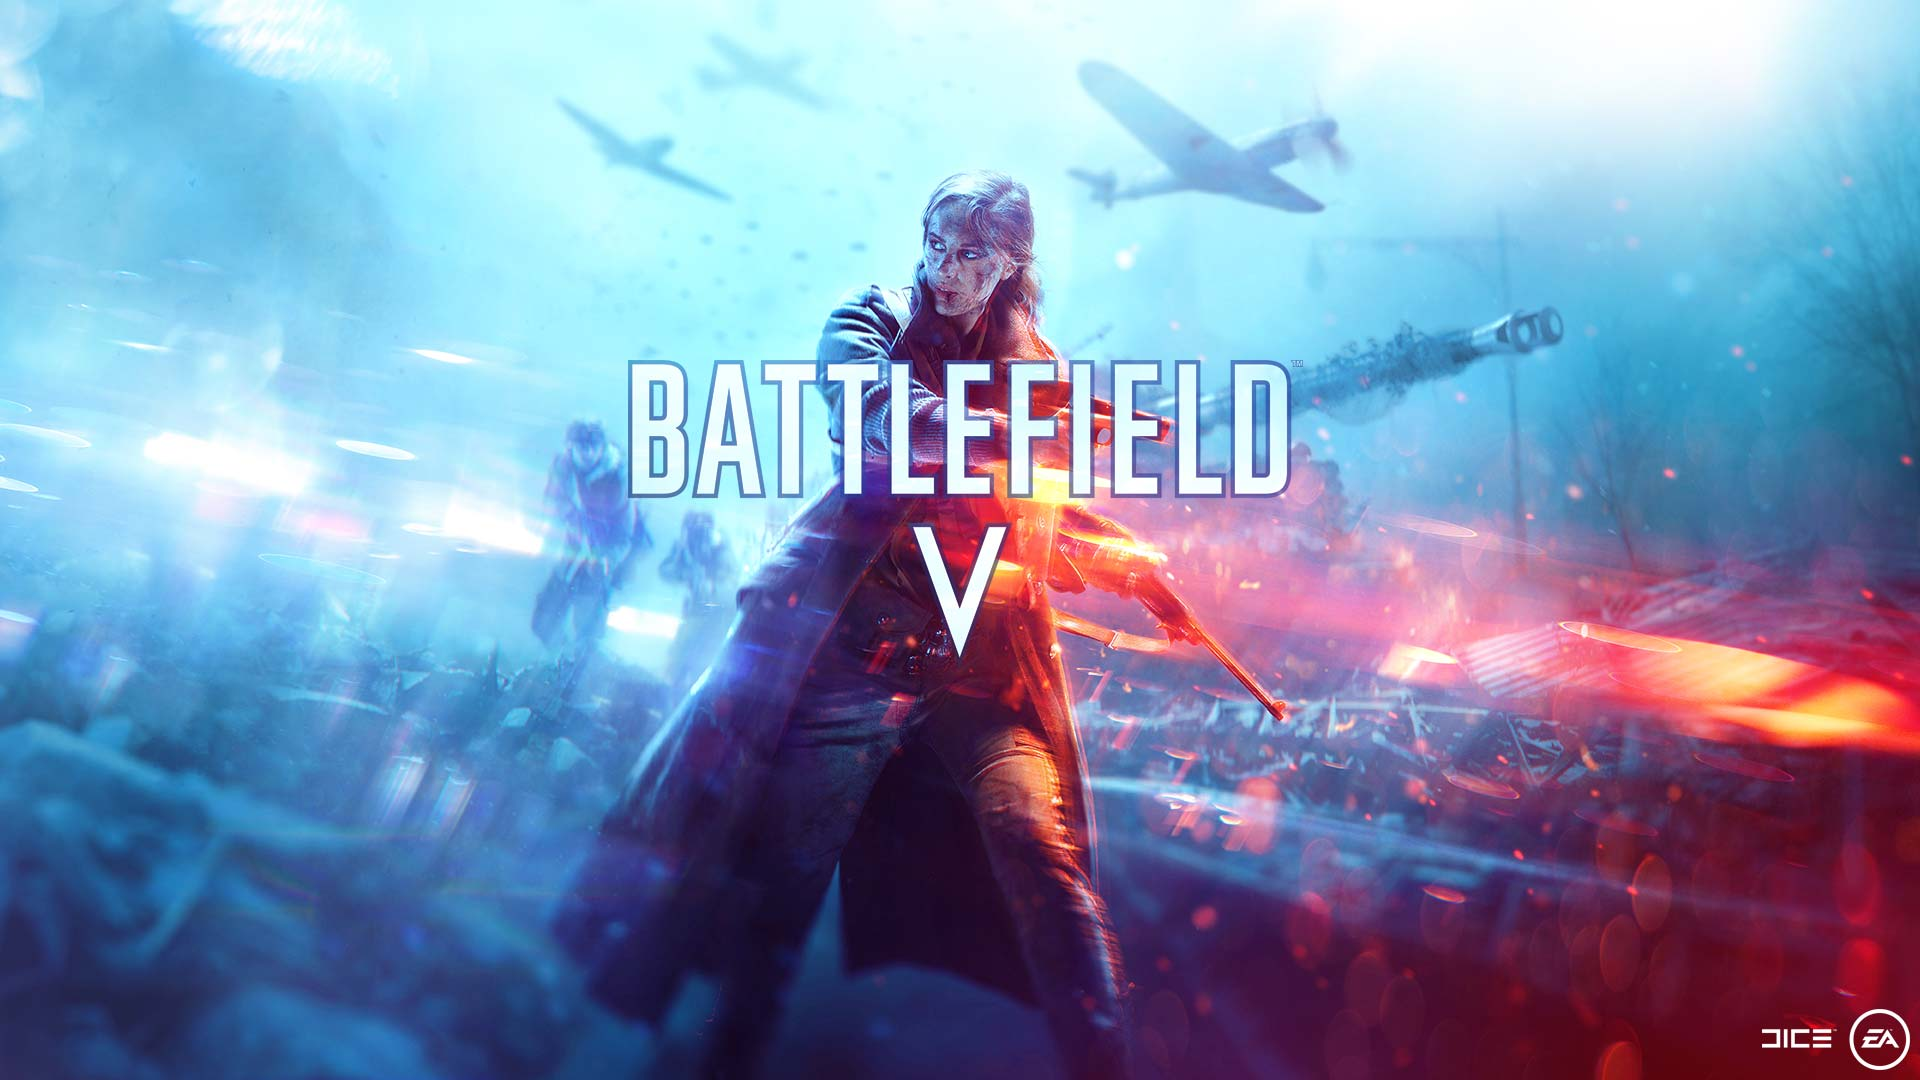 Battlefield 5 Microtransactions available in January?